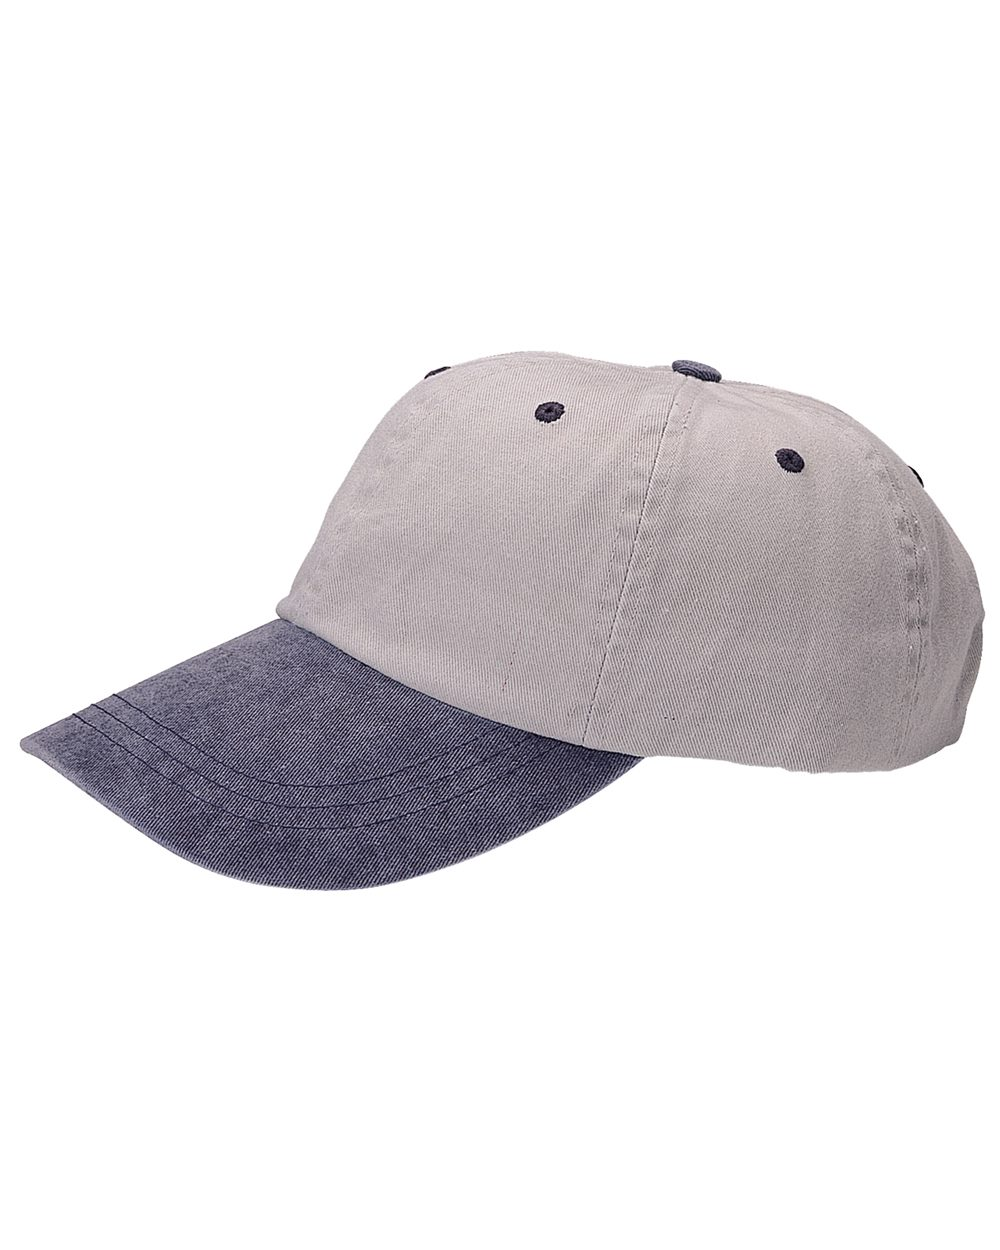 Mega Cap 7601 - Pigment Dyed Cotton Twill Cap